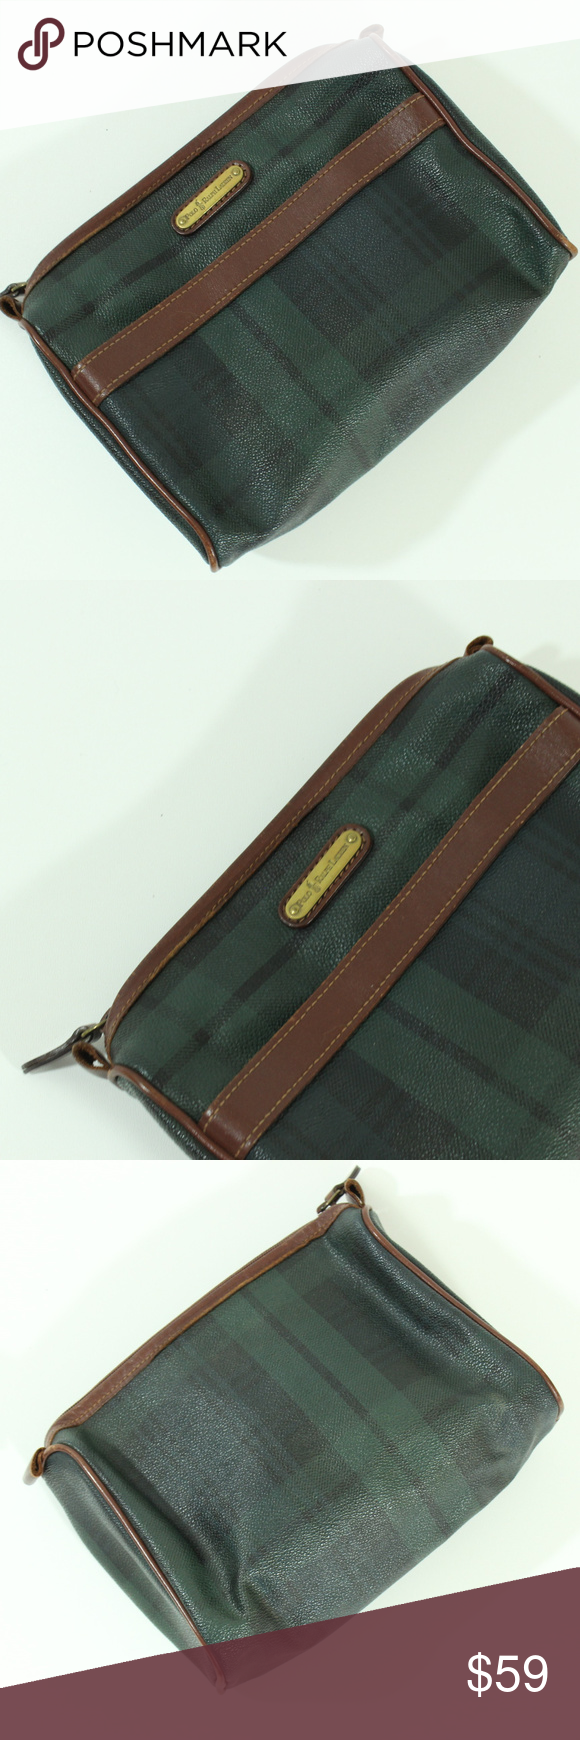 83a56af213 Polo Ralph Lauren Blackwatch Cosmetic Make Up Bag VTG Polo Ralph Lauren  Plaid Leather Clutch Bag USED (The item might have fading